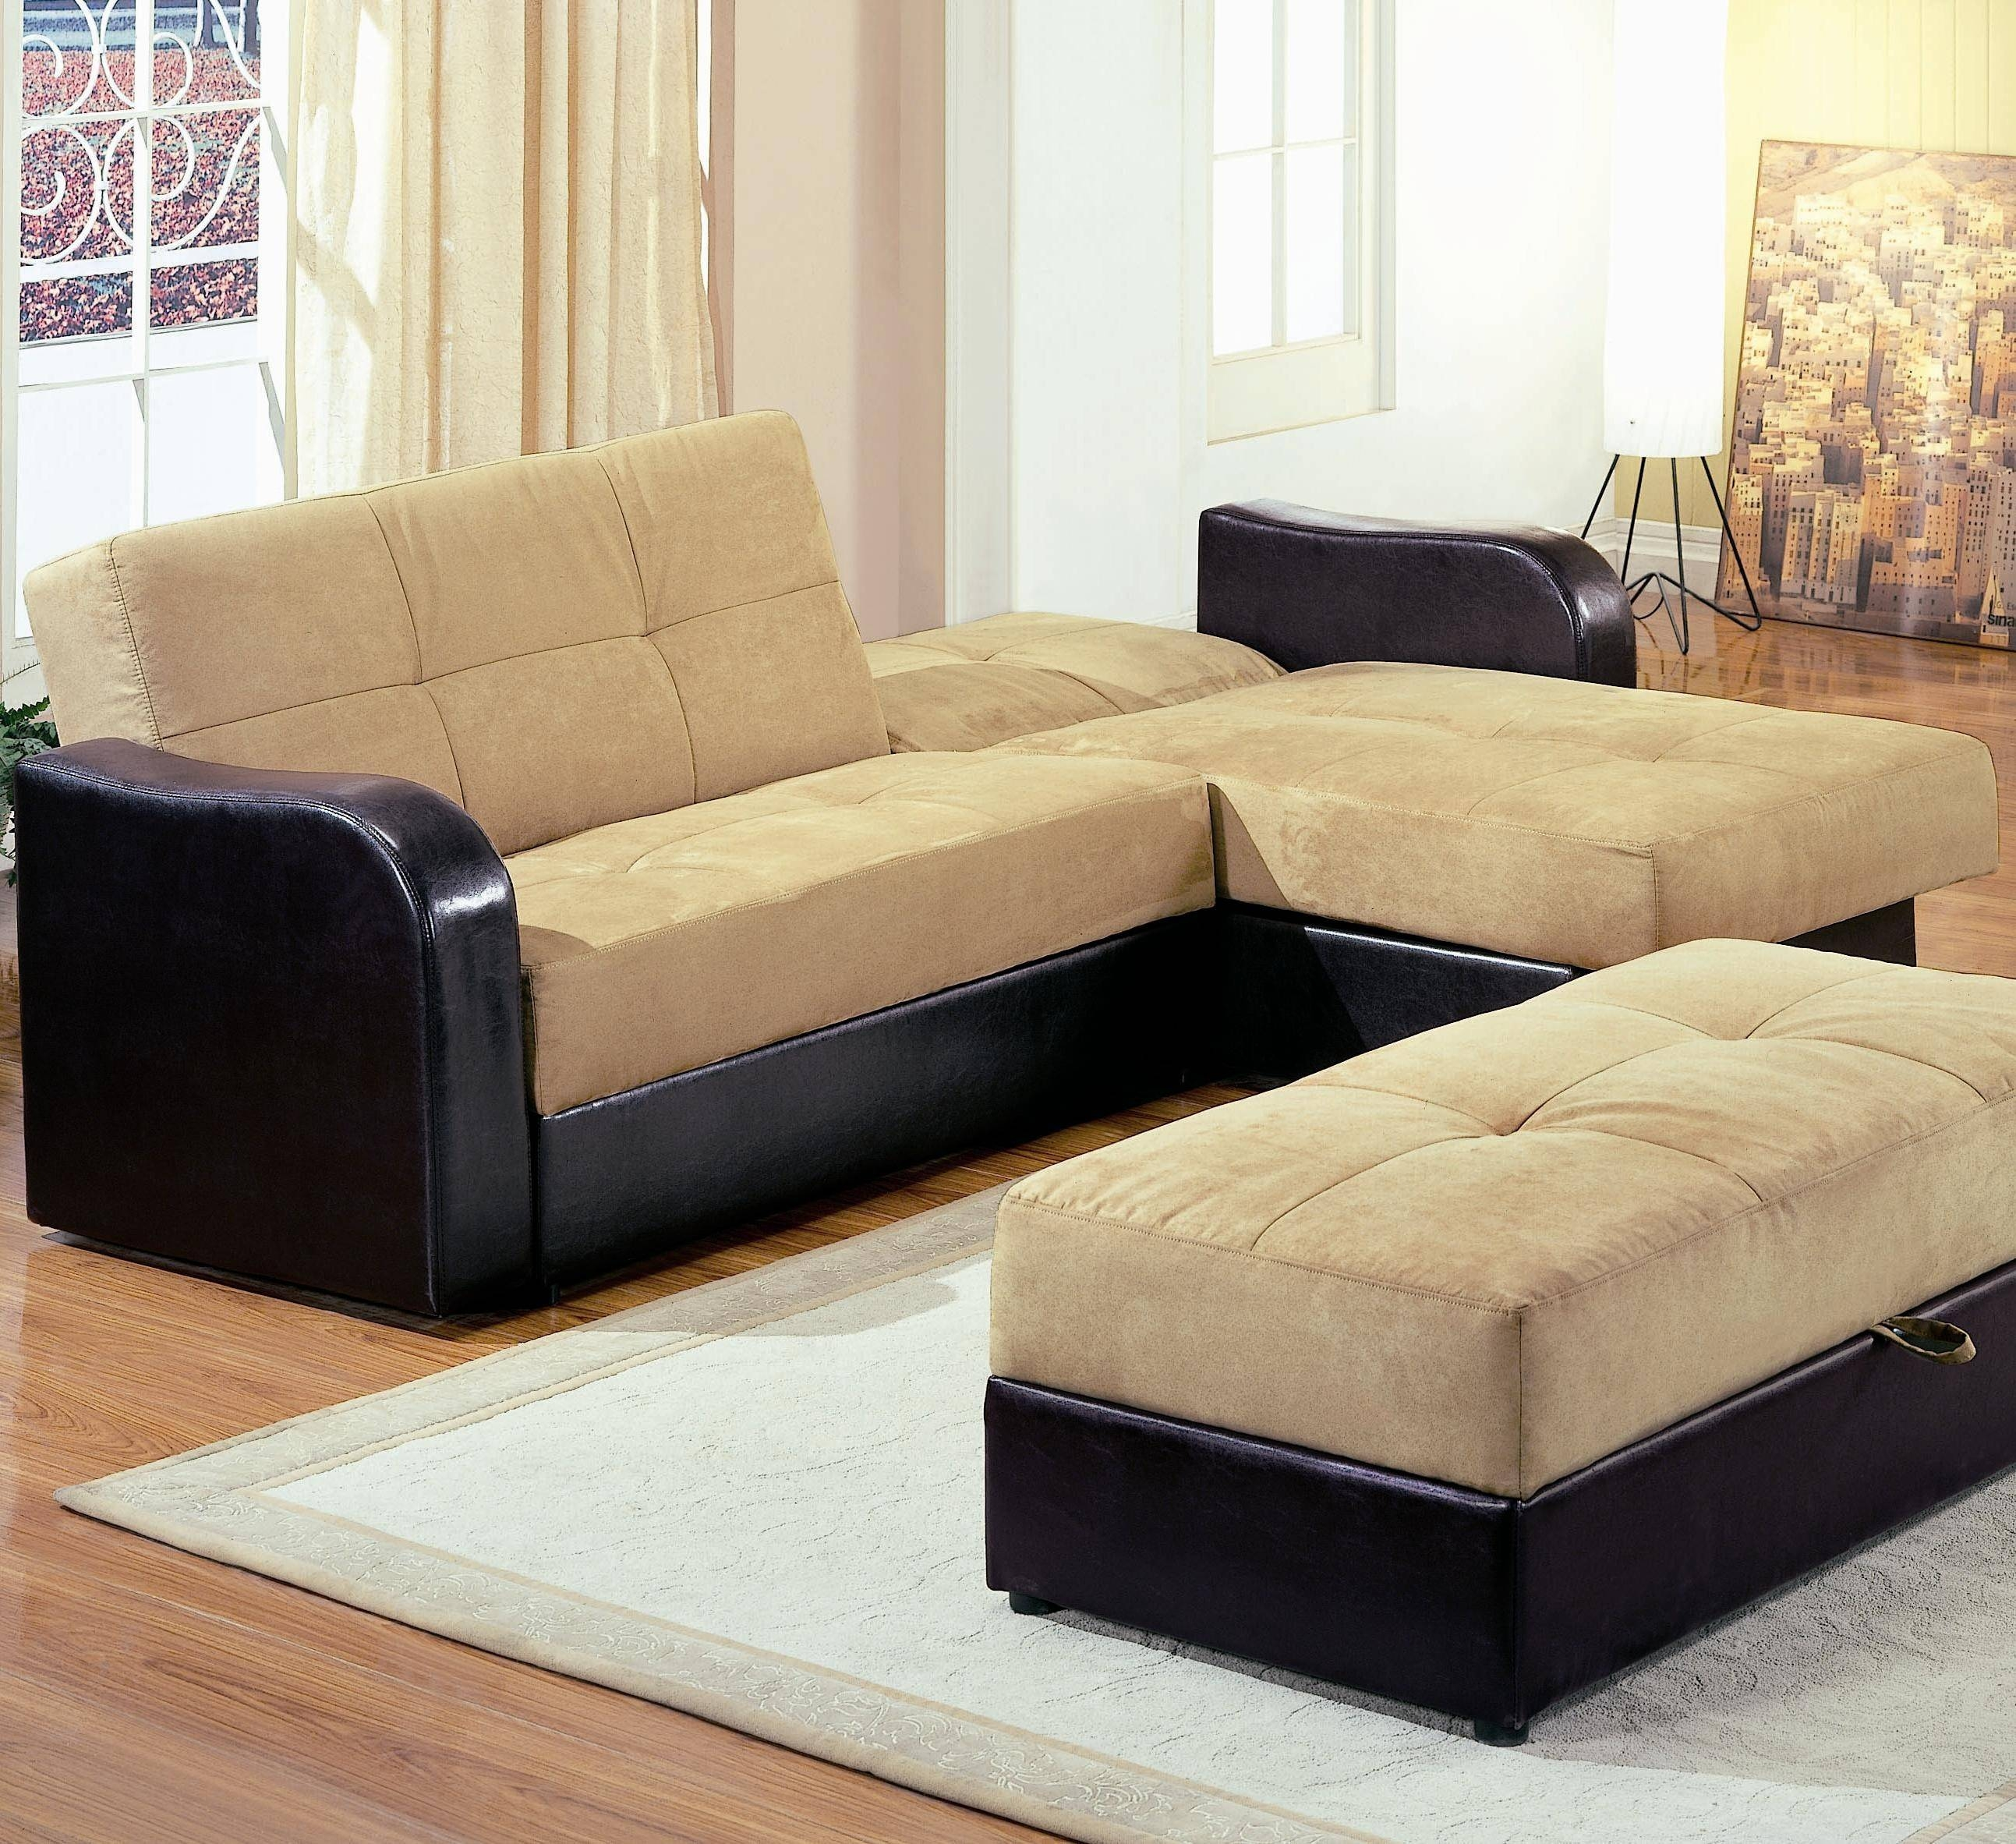 Perfect Sofas: Striking Cheap Sofa Sleepers For Small Living Spaces In Sectional  Sofas With Sleeper And